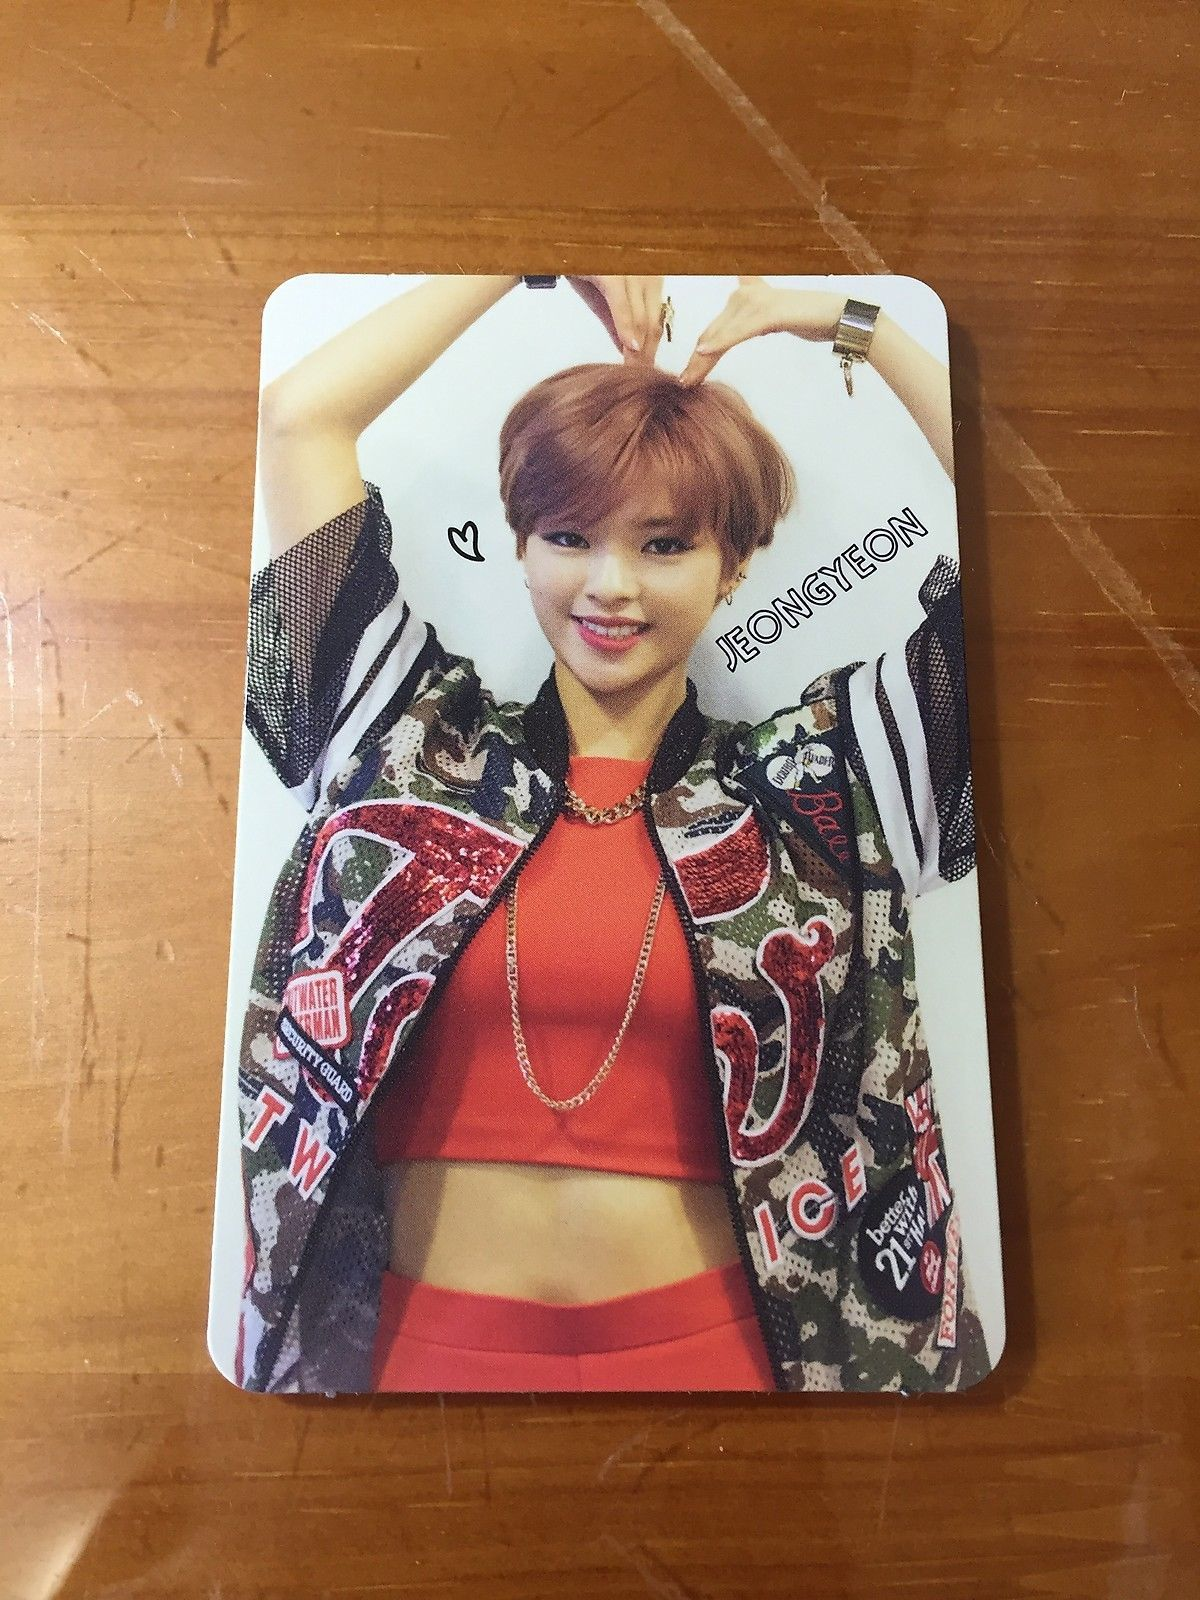 4 99 Twice Debut Album Like Ohh Ahh Red Card Jeongyeon